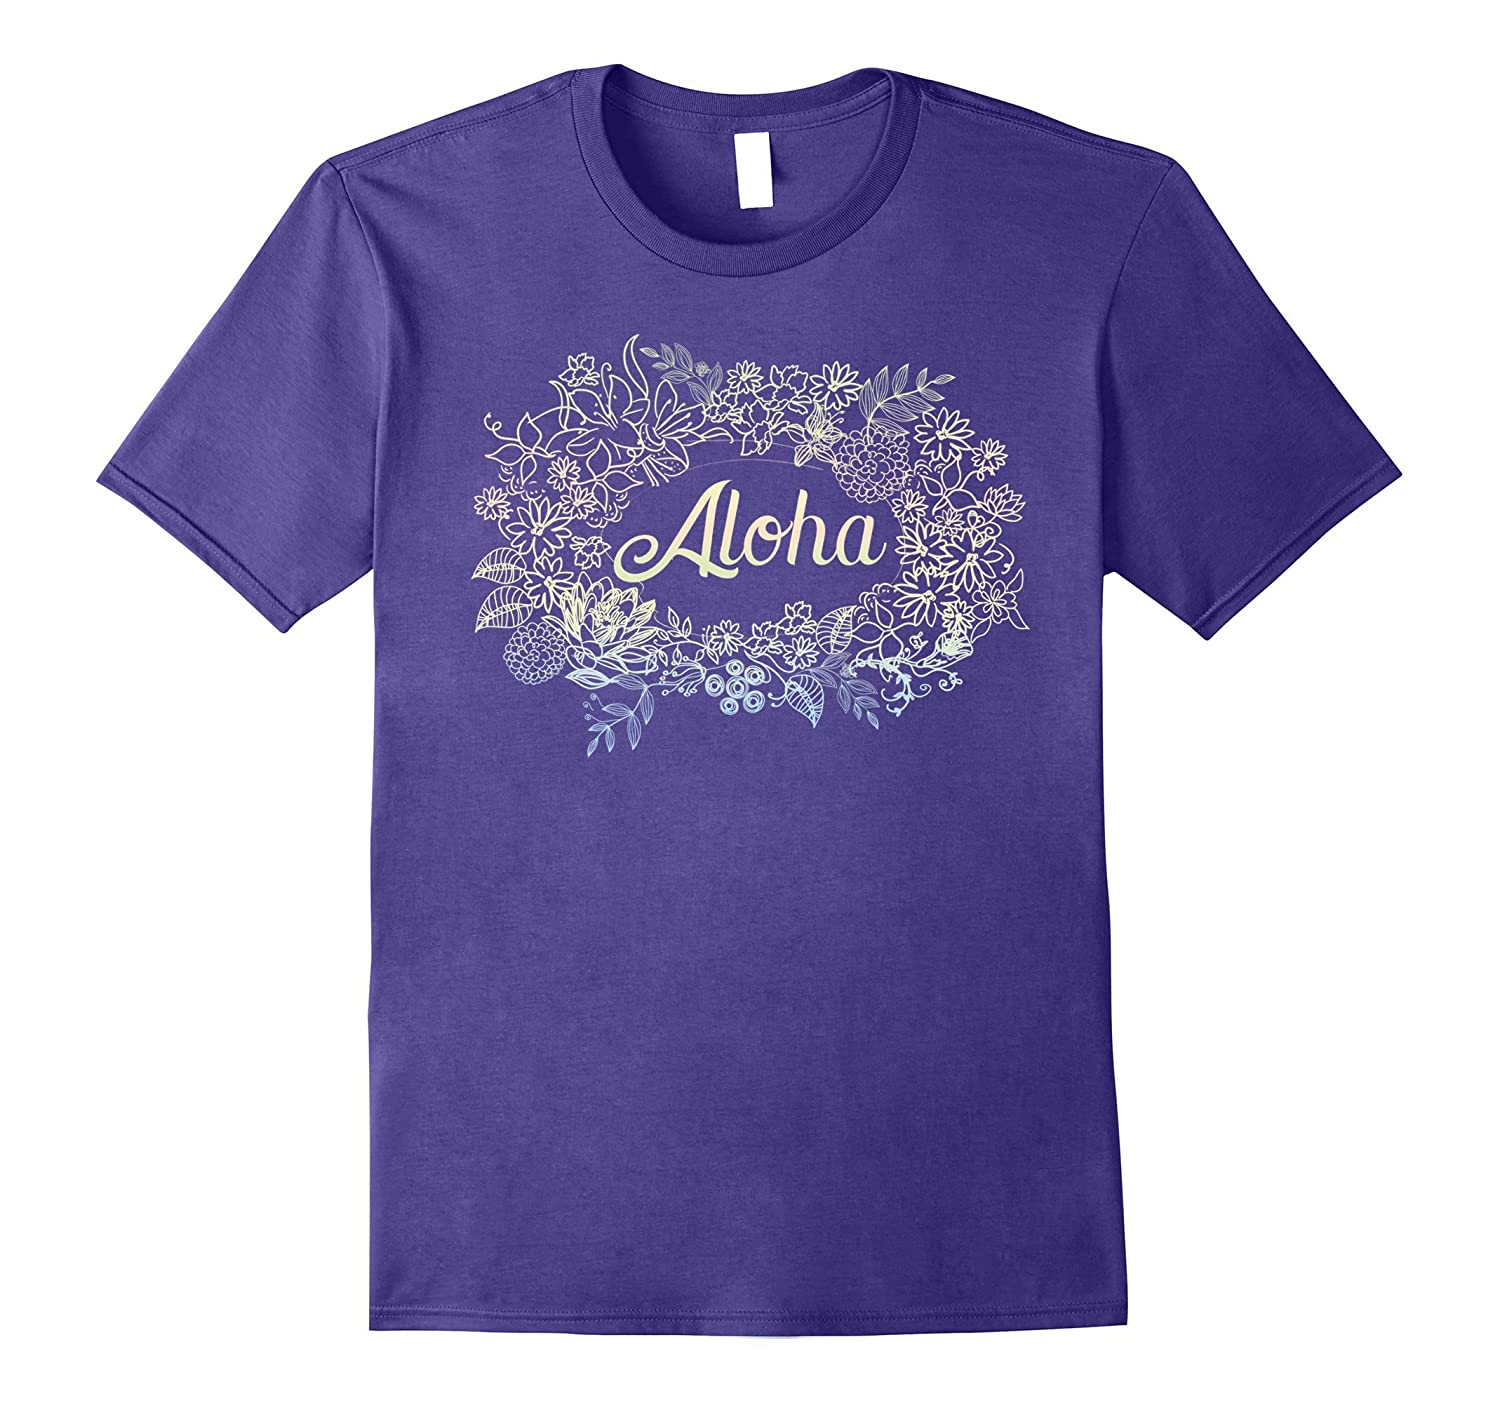 Aloha Hawaiian Shirt Tiki Party Luau Party Tshirt Vacation-BN